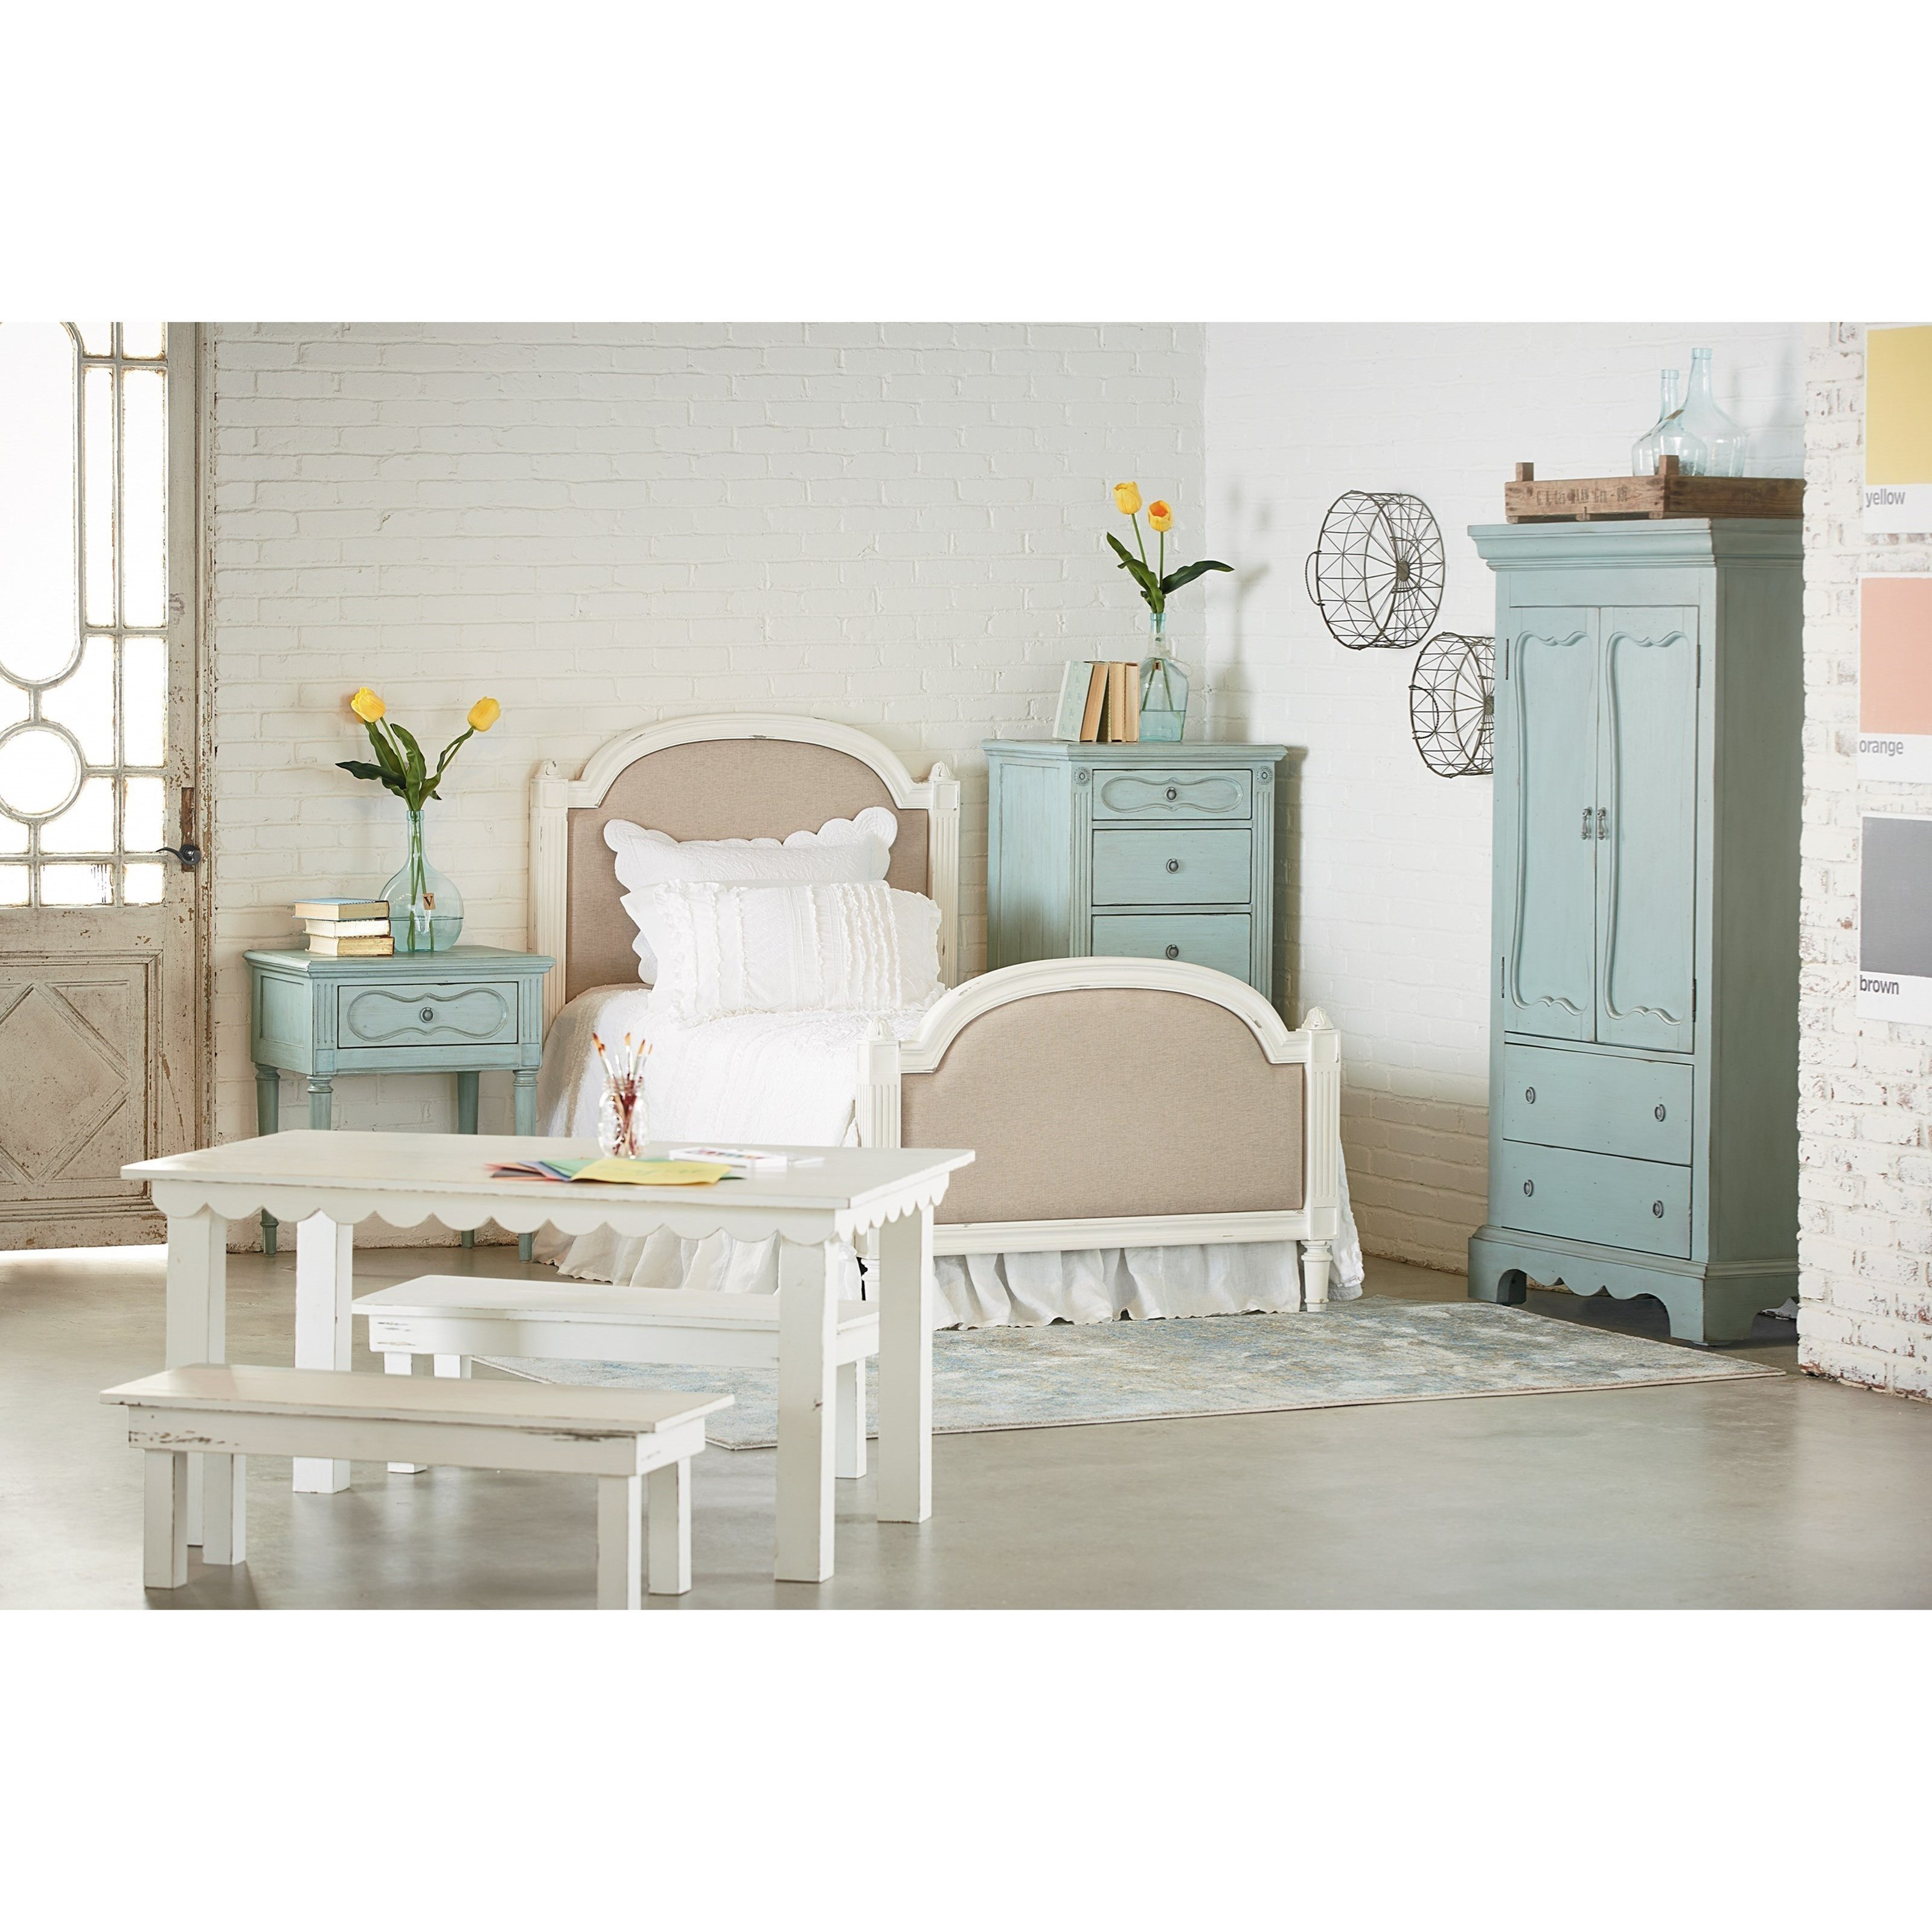 Magnolia Home by Joanna Gaines French Inspired Twin Bedroom Group - Ivan Smith Furniture ...